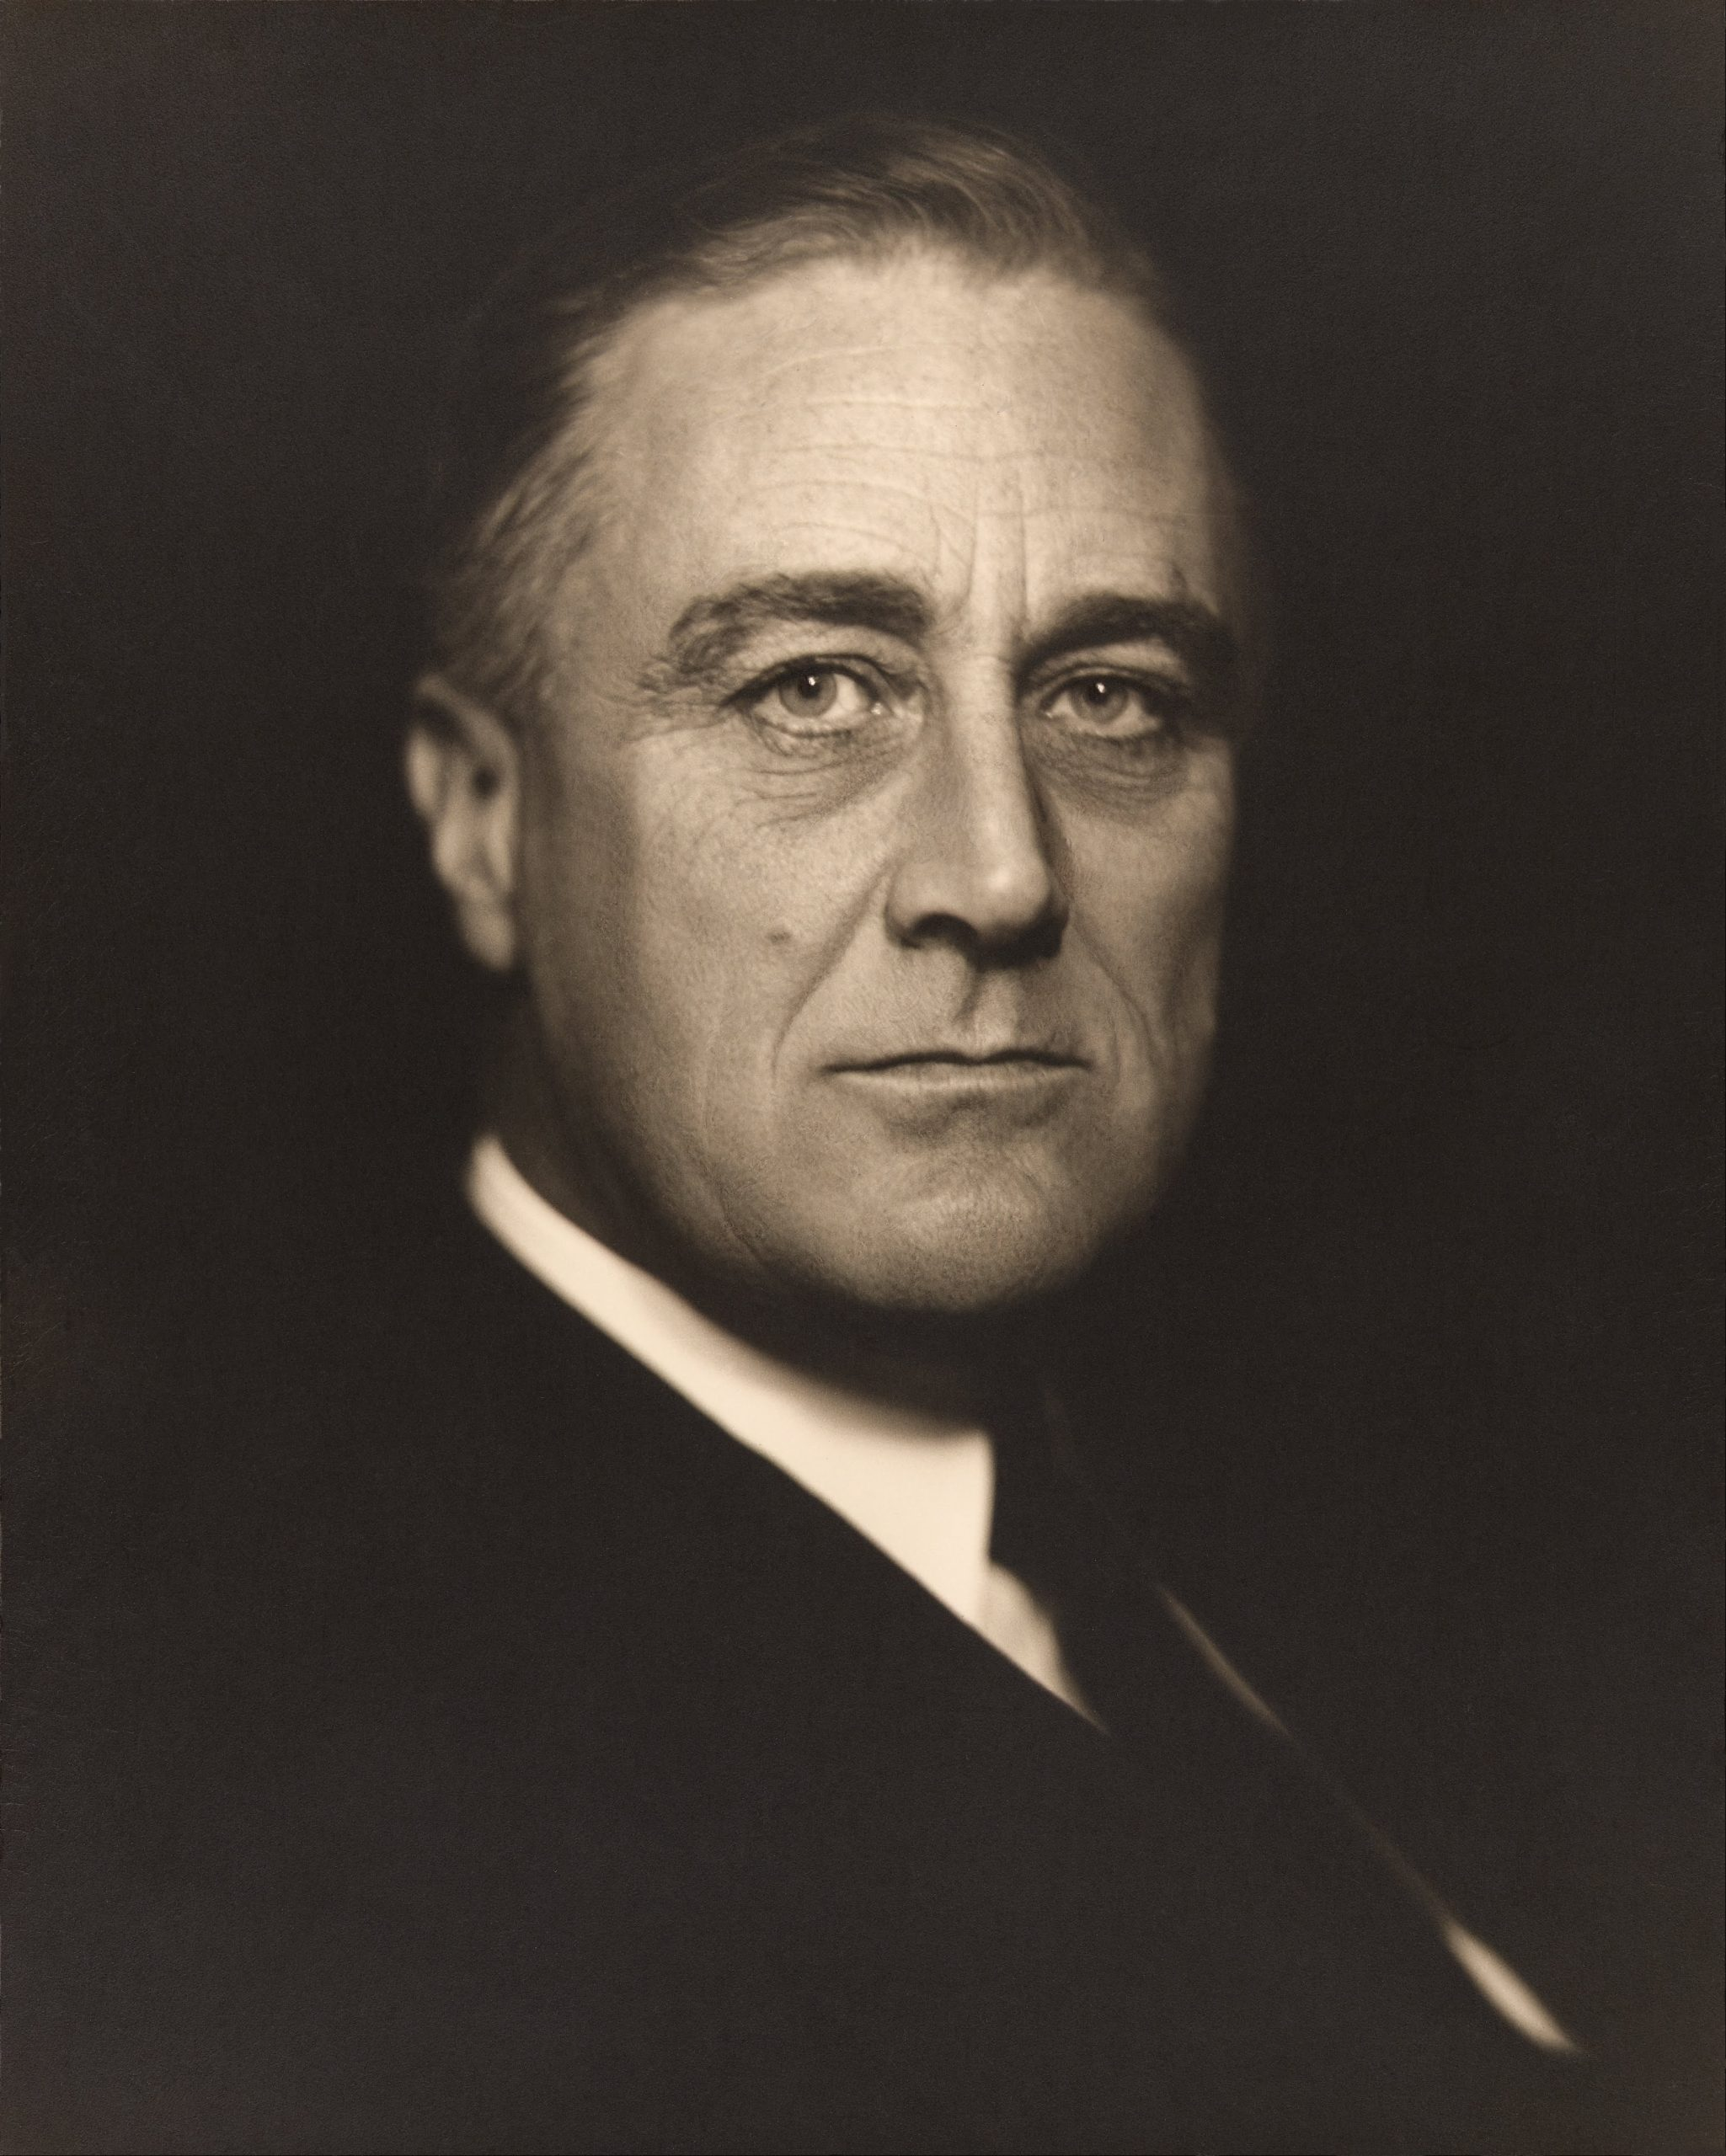 Best quotes by Franklin D. Roosevelt